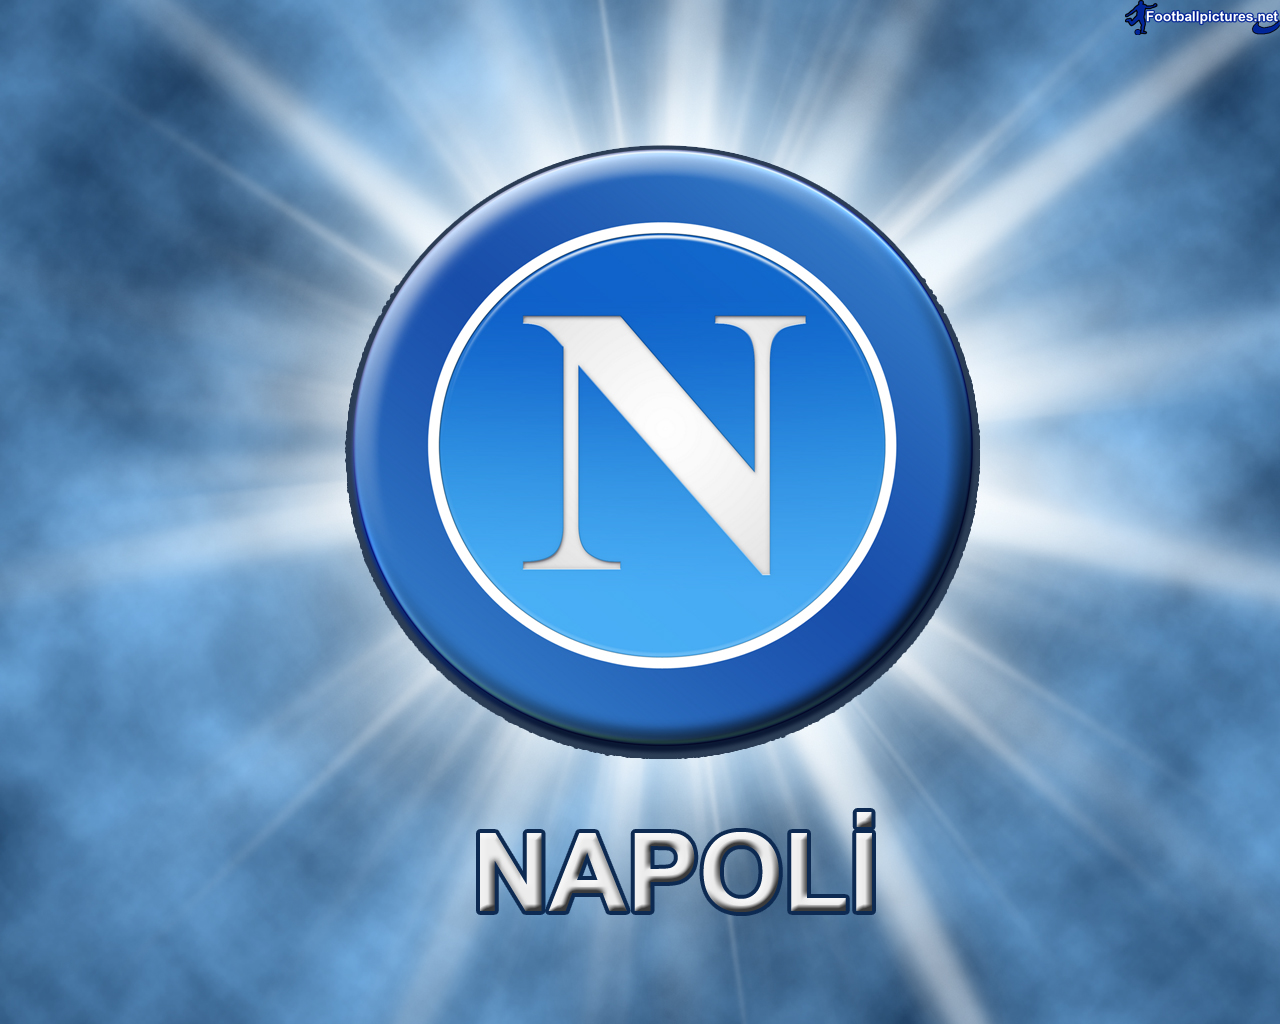 Mobile ssc napoli wallpaper full hd pictures for Immagini wallpaper hd